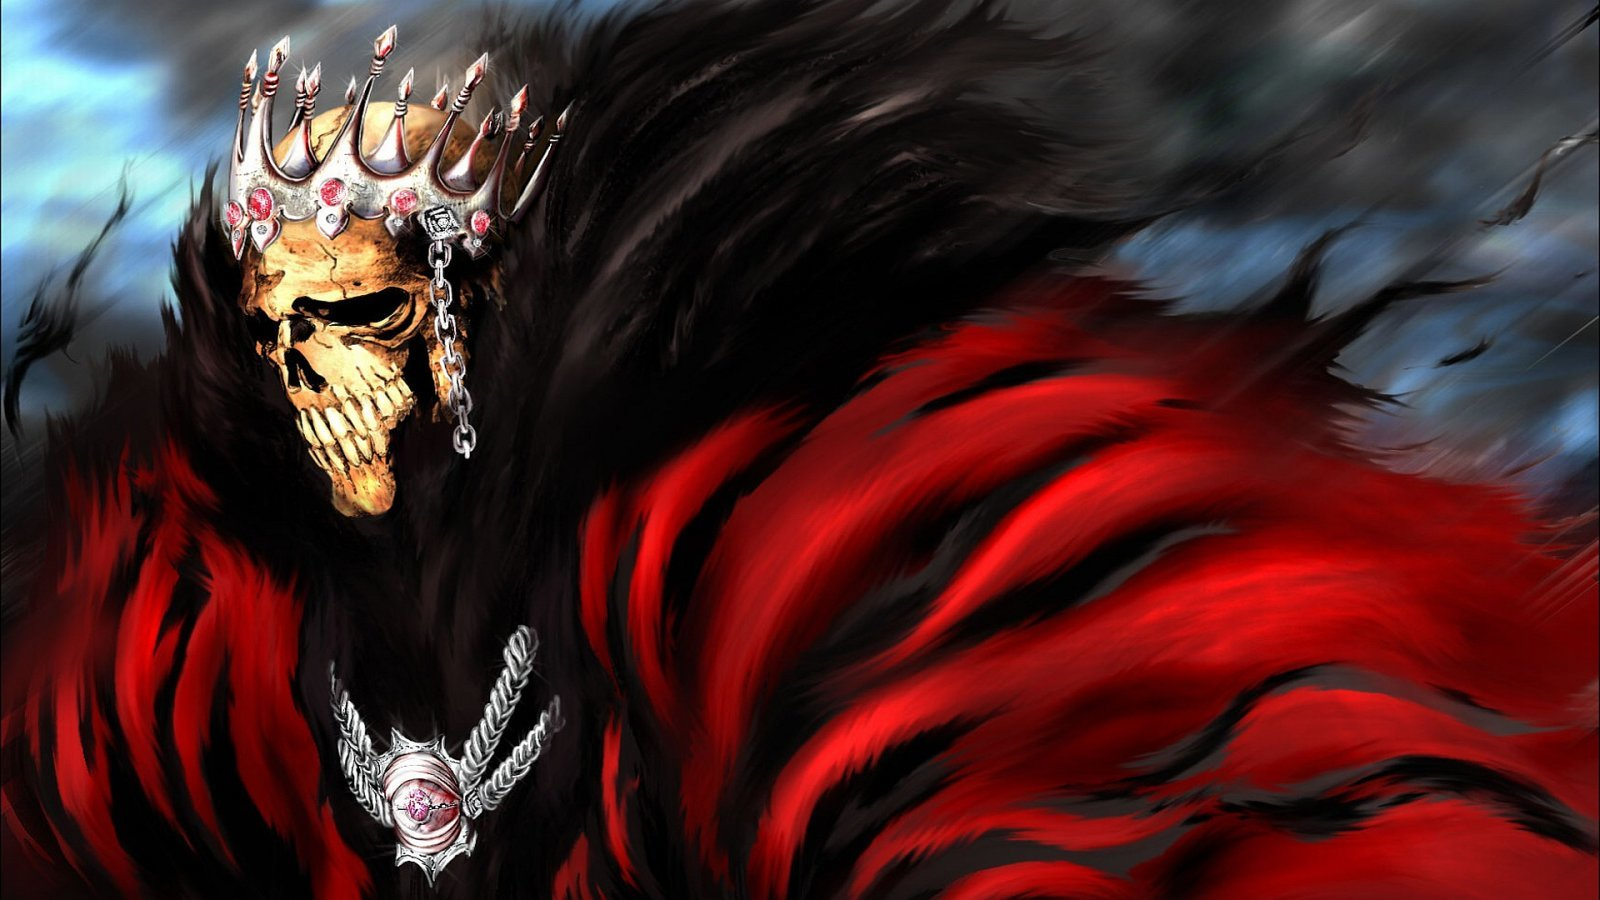 bleach skeletons Espada Baraggan HD Wallpaper